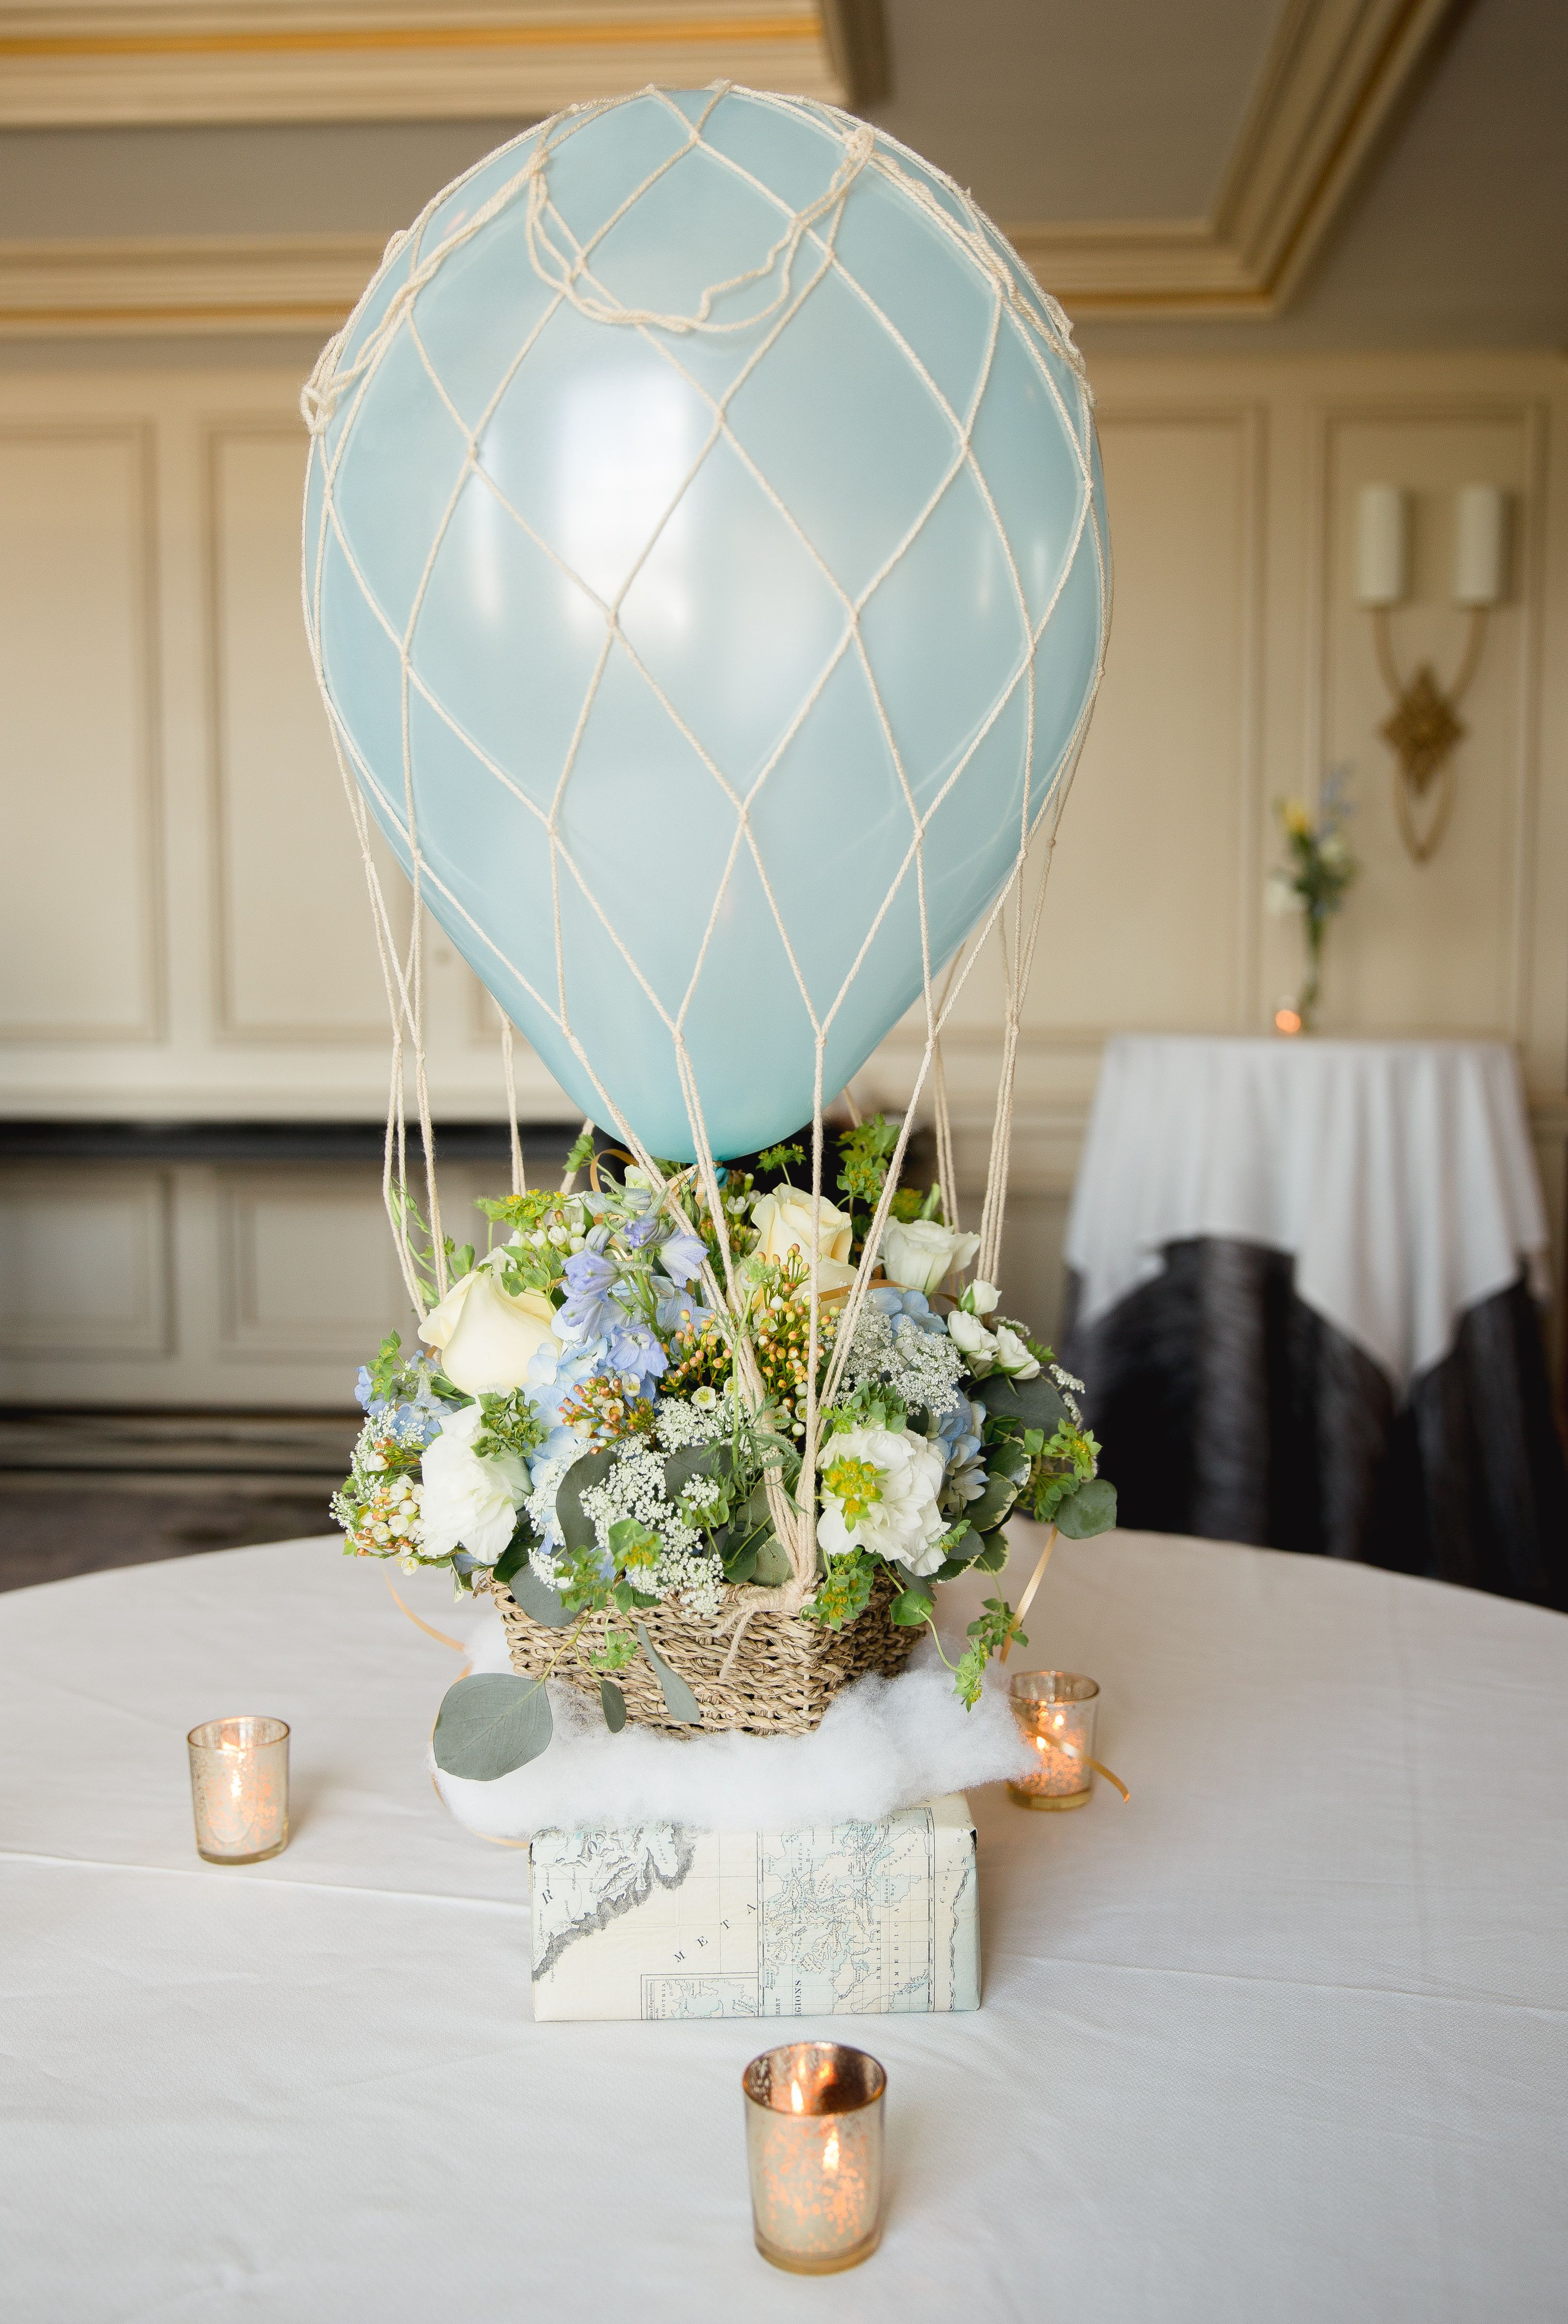 Up Up And Away Baby Shower Party Theme Baby Shower Balloons Boy Baby Shower Centerpieces Hot Air Balloon Baby Shower Theme